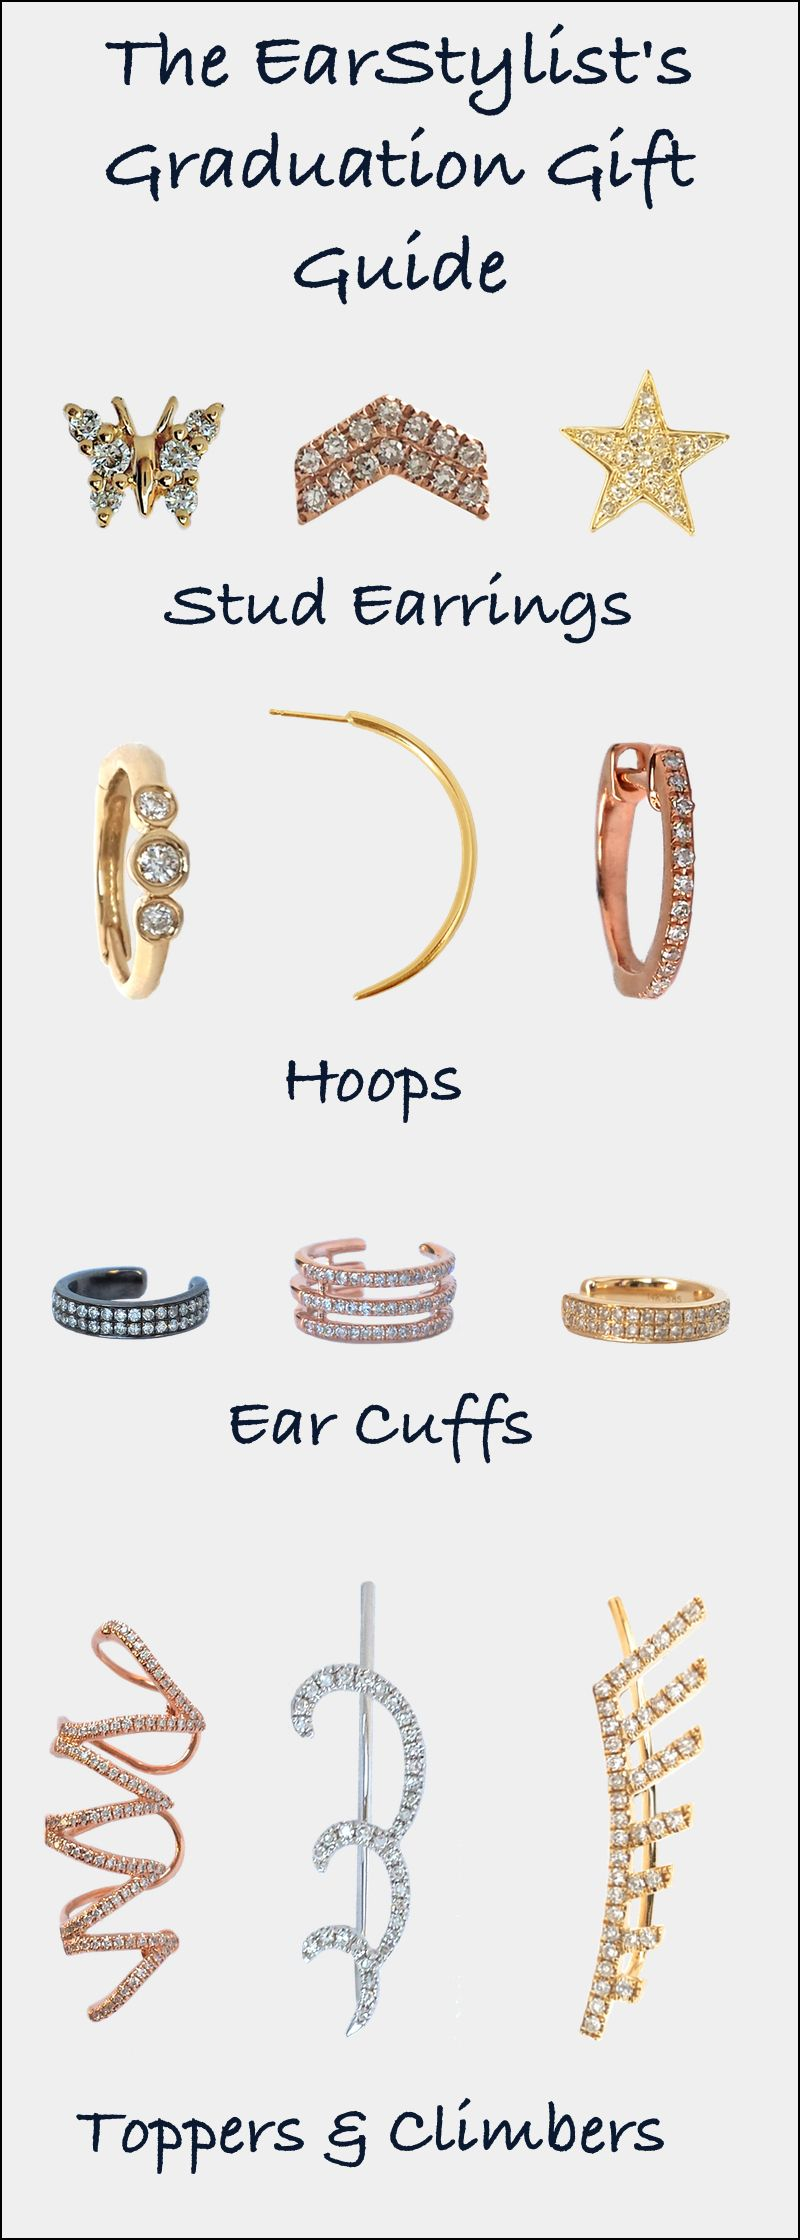 New piercing ideas  Whether you need a gift for a new graduate or want to